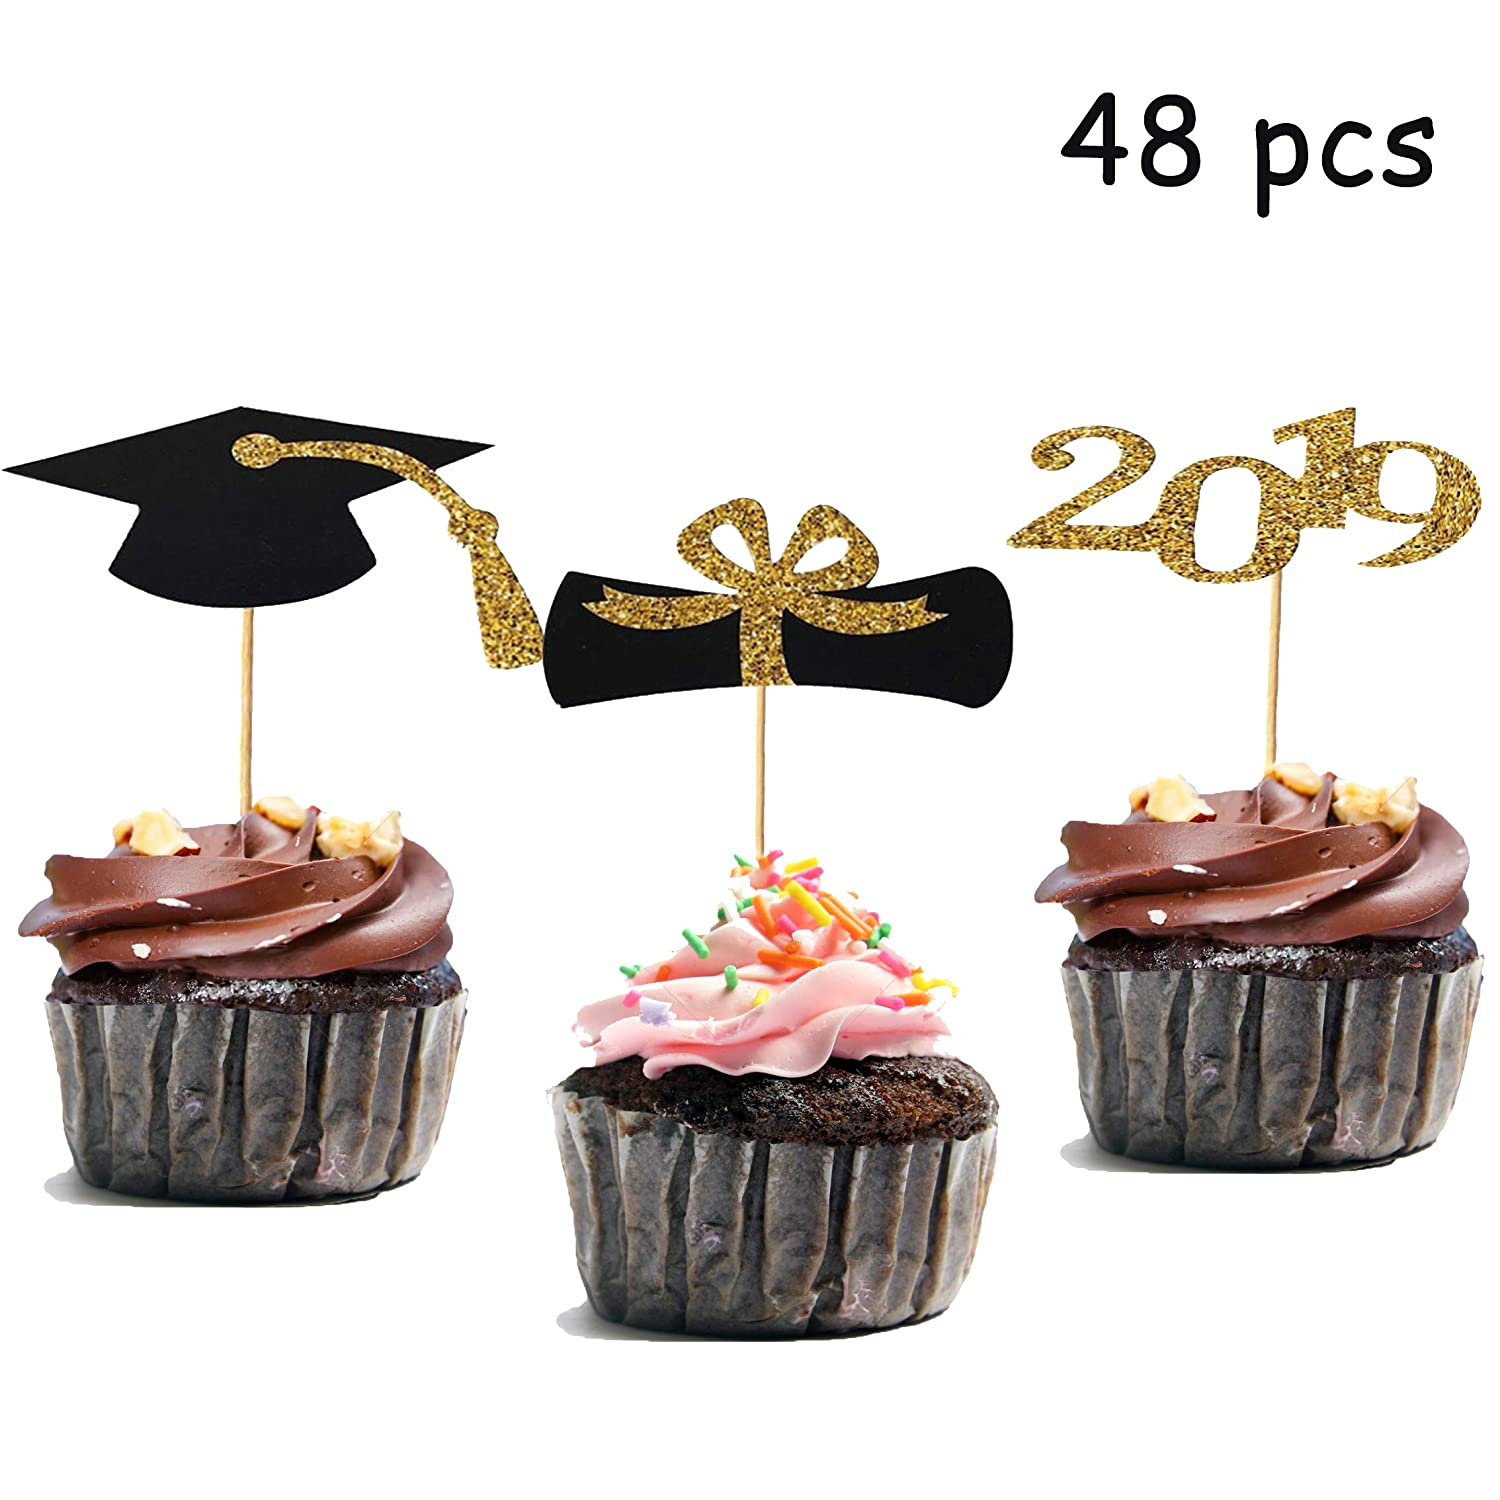 48pcs Graduation Cupcake Toppers 2019 Graduation Party Decorations Black And Gold Cupcake Decorations